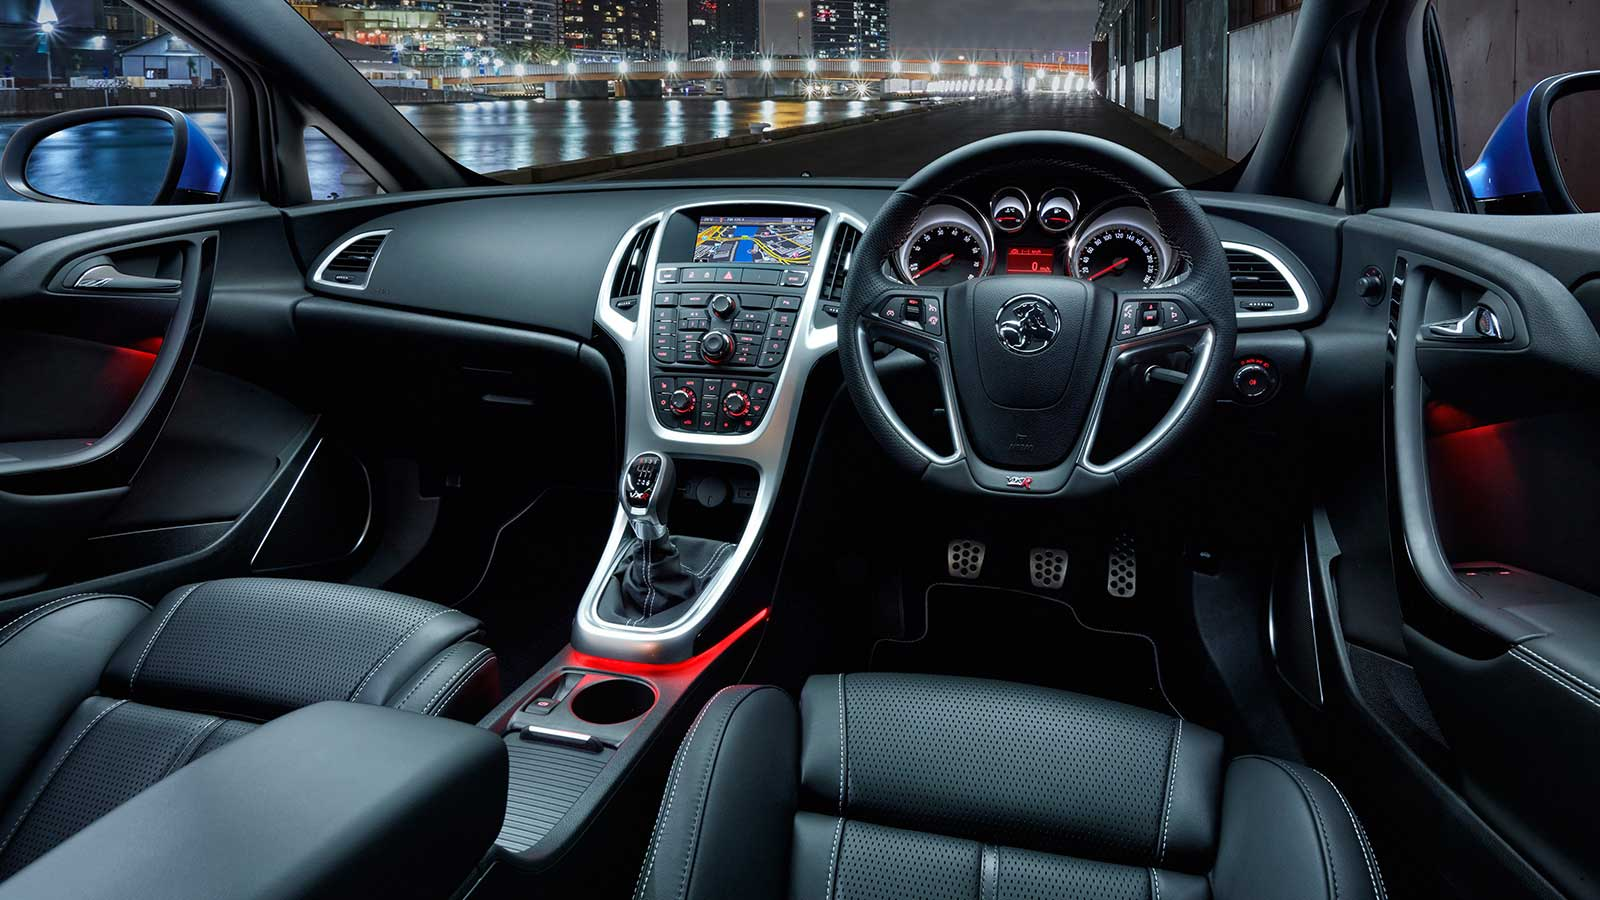 Holden Astra Vxr Interior Image Gallery, Pictures, Photos  Vauxhall Astra Vxr Interior